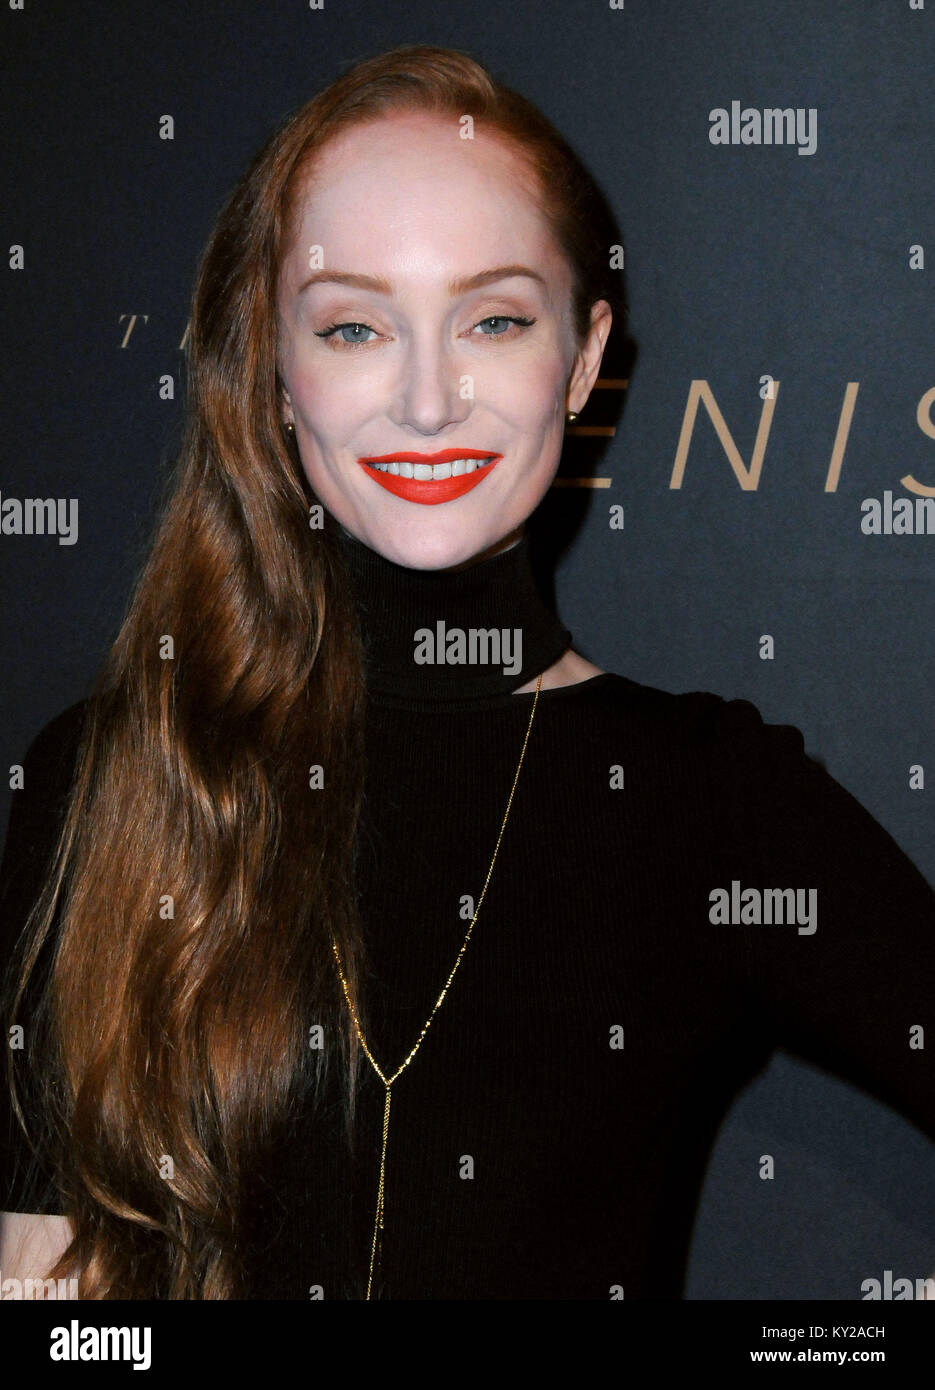 Snapchat Lotte Verbeek nudes (21 photos), Tits, Cleavage, Boobs, lingerie 2015